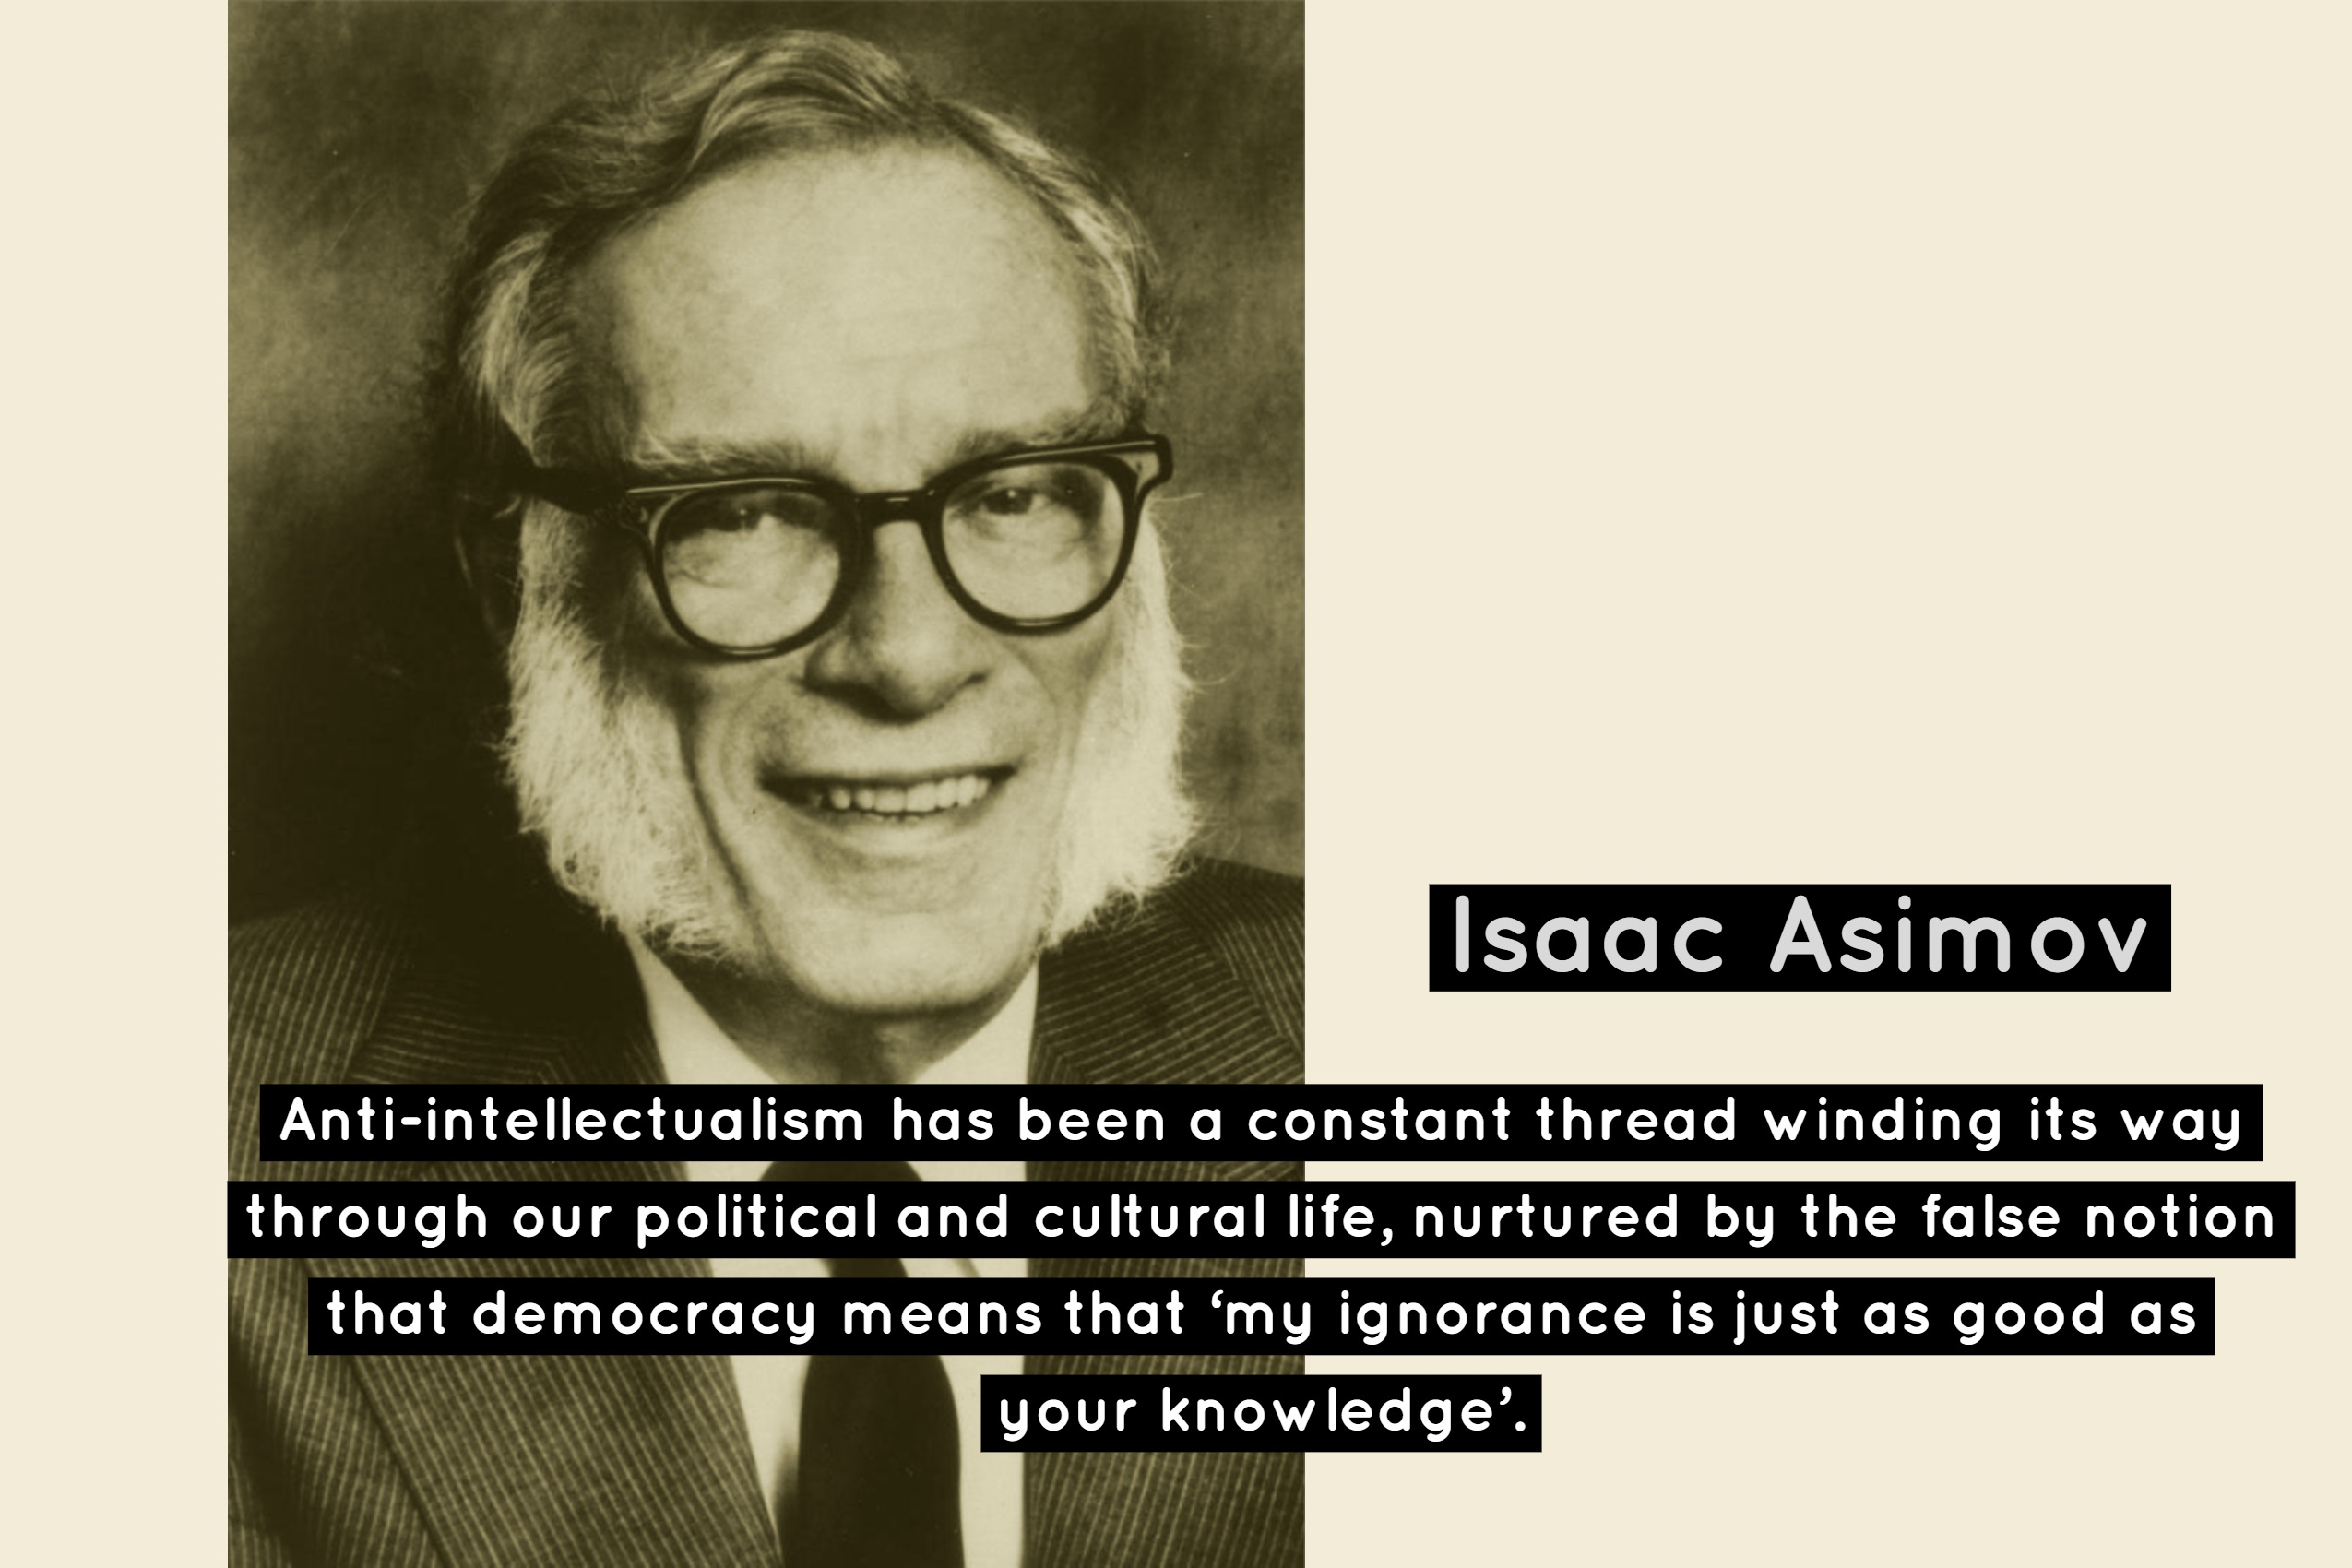 """Anti-intellectualism has been a constant thread winding its way through our political and cultural life, nurtured by the false notion that democracy means that 'my ignorance is just as good as your knowledge'."" – Isaac Asimov [2550×1700]"